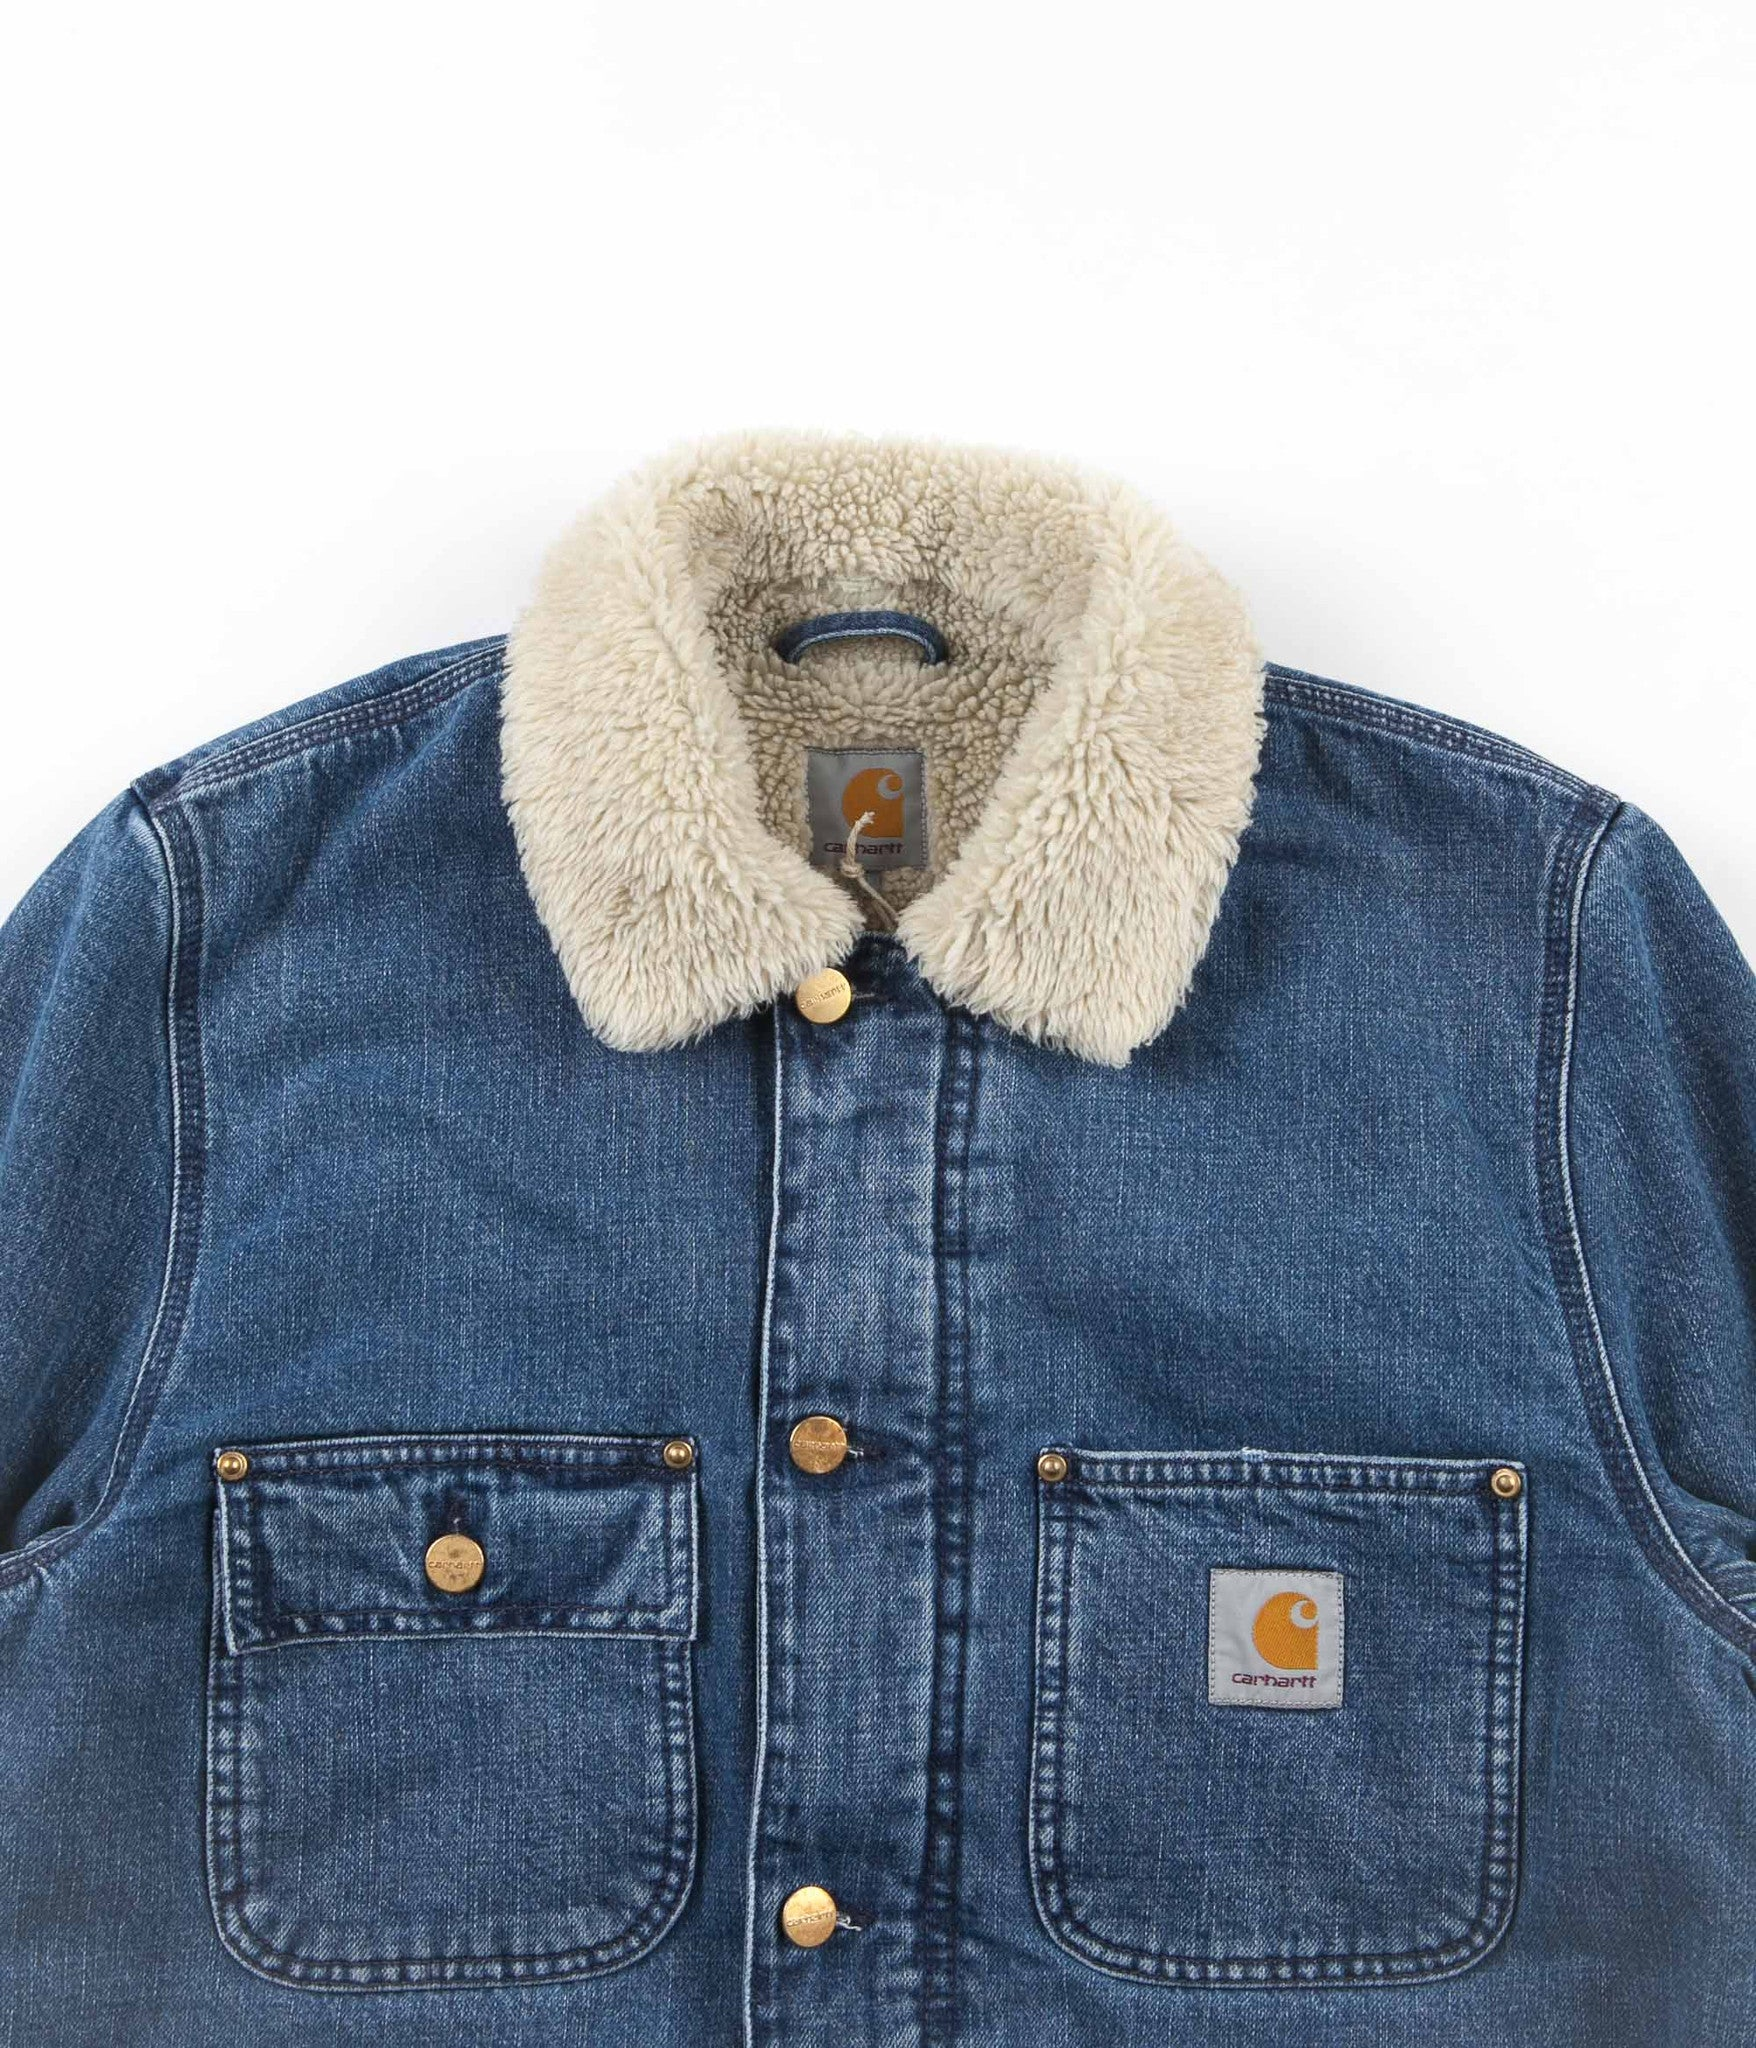 Carhartt Fairmount Jacket - Blue